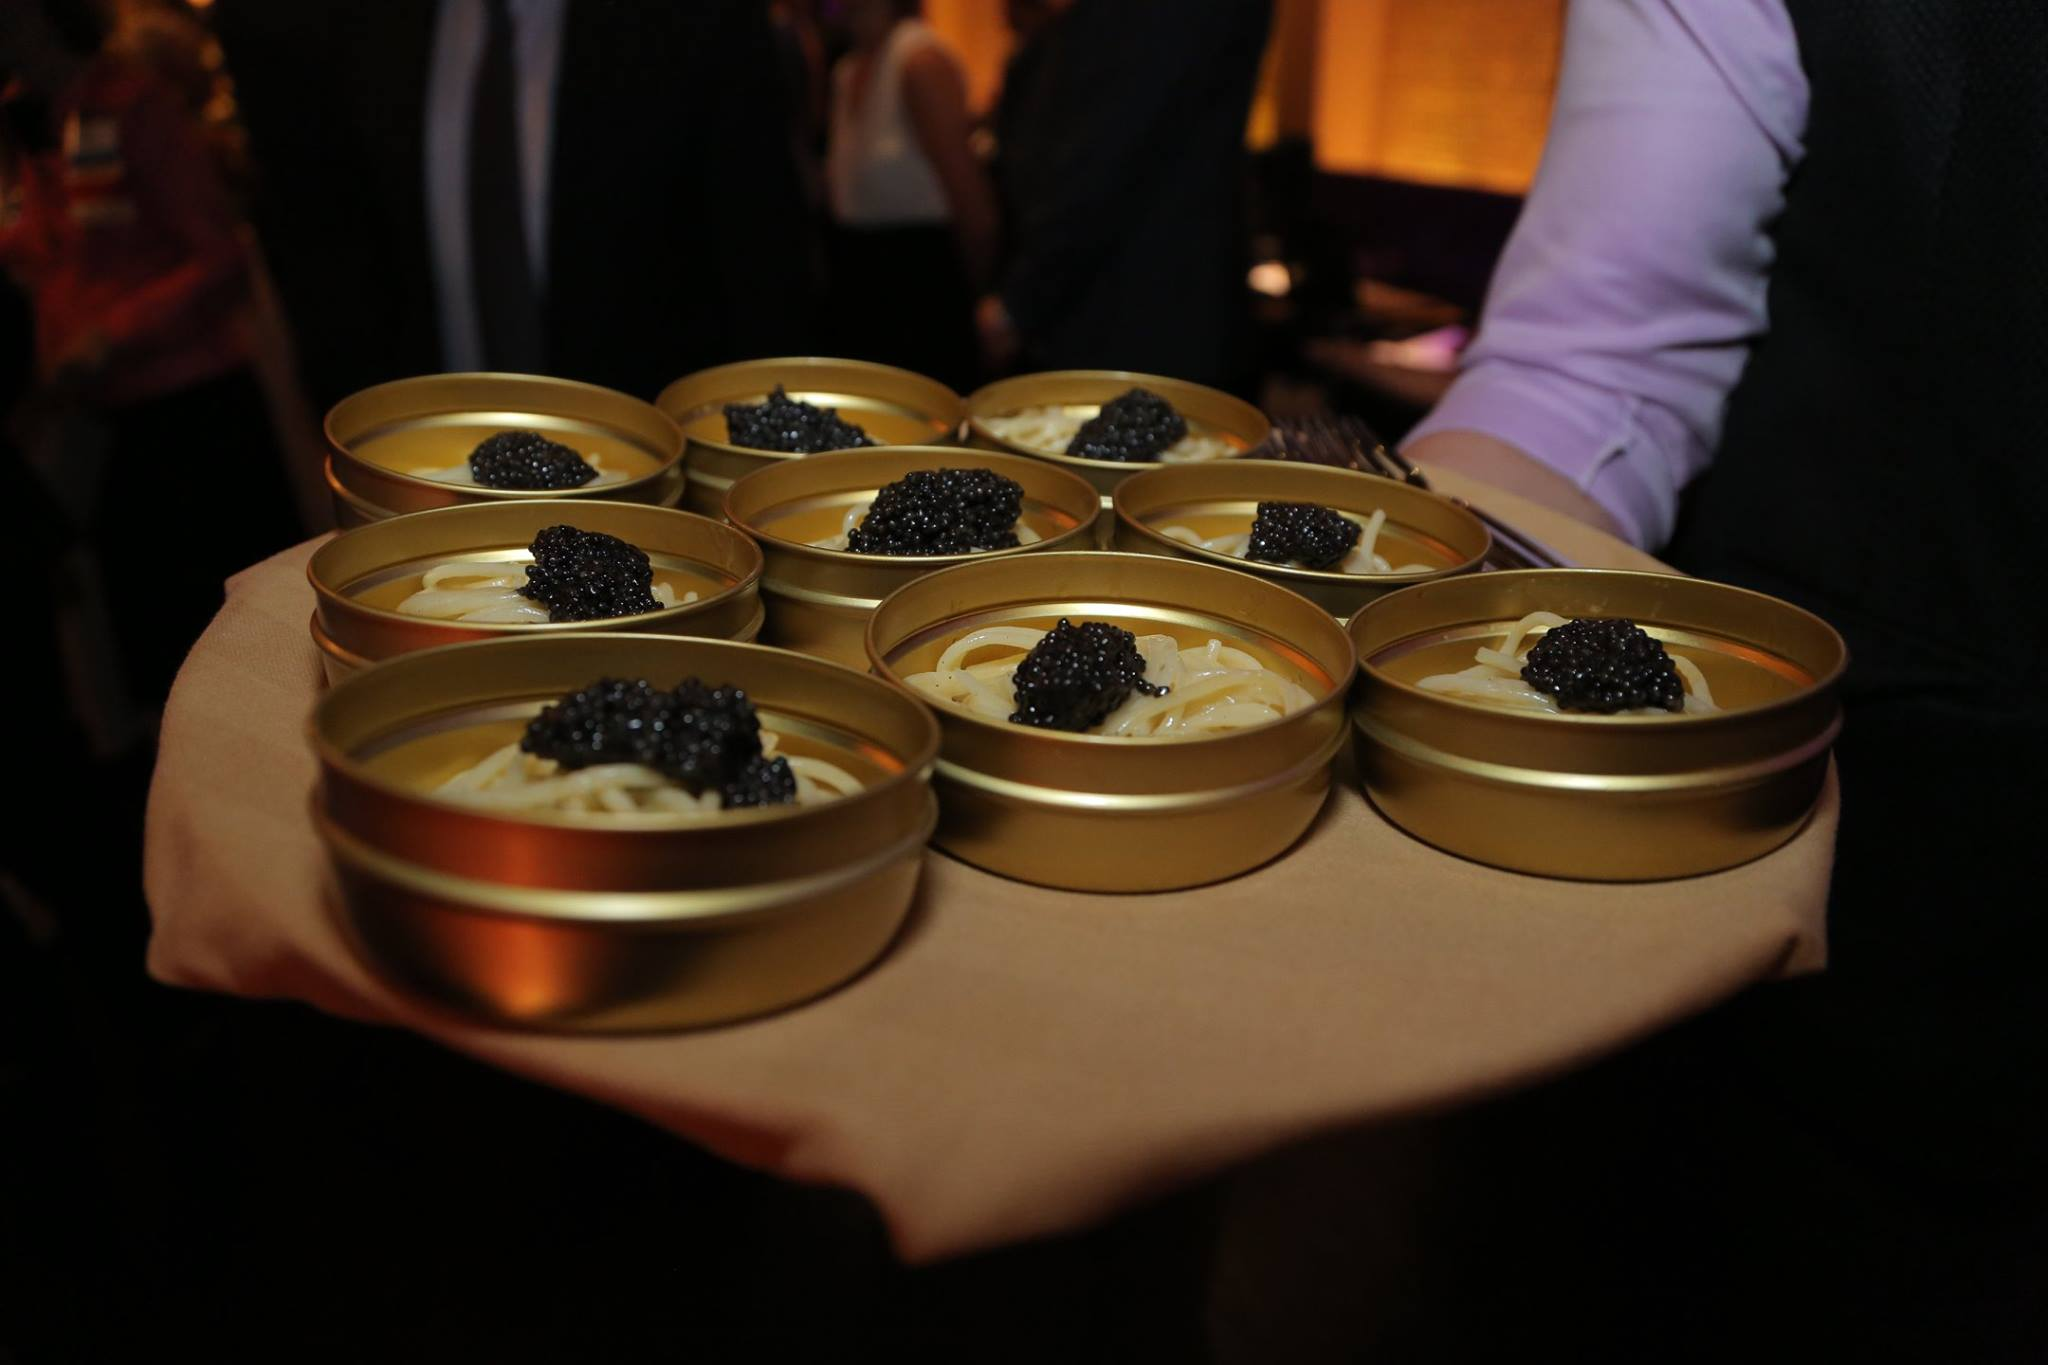 Quintessence Caviar – Canadian Sturgeon Caviar and Imported